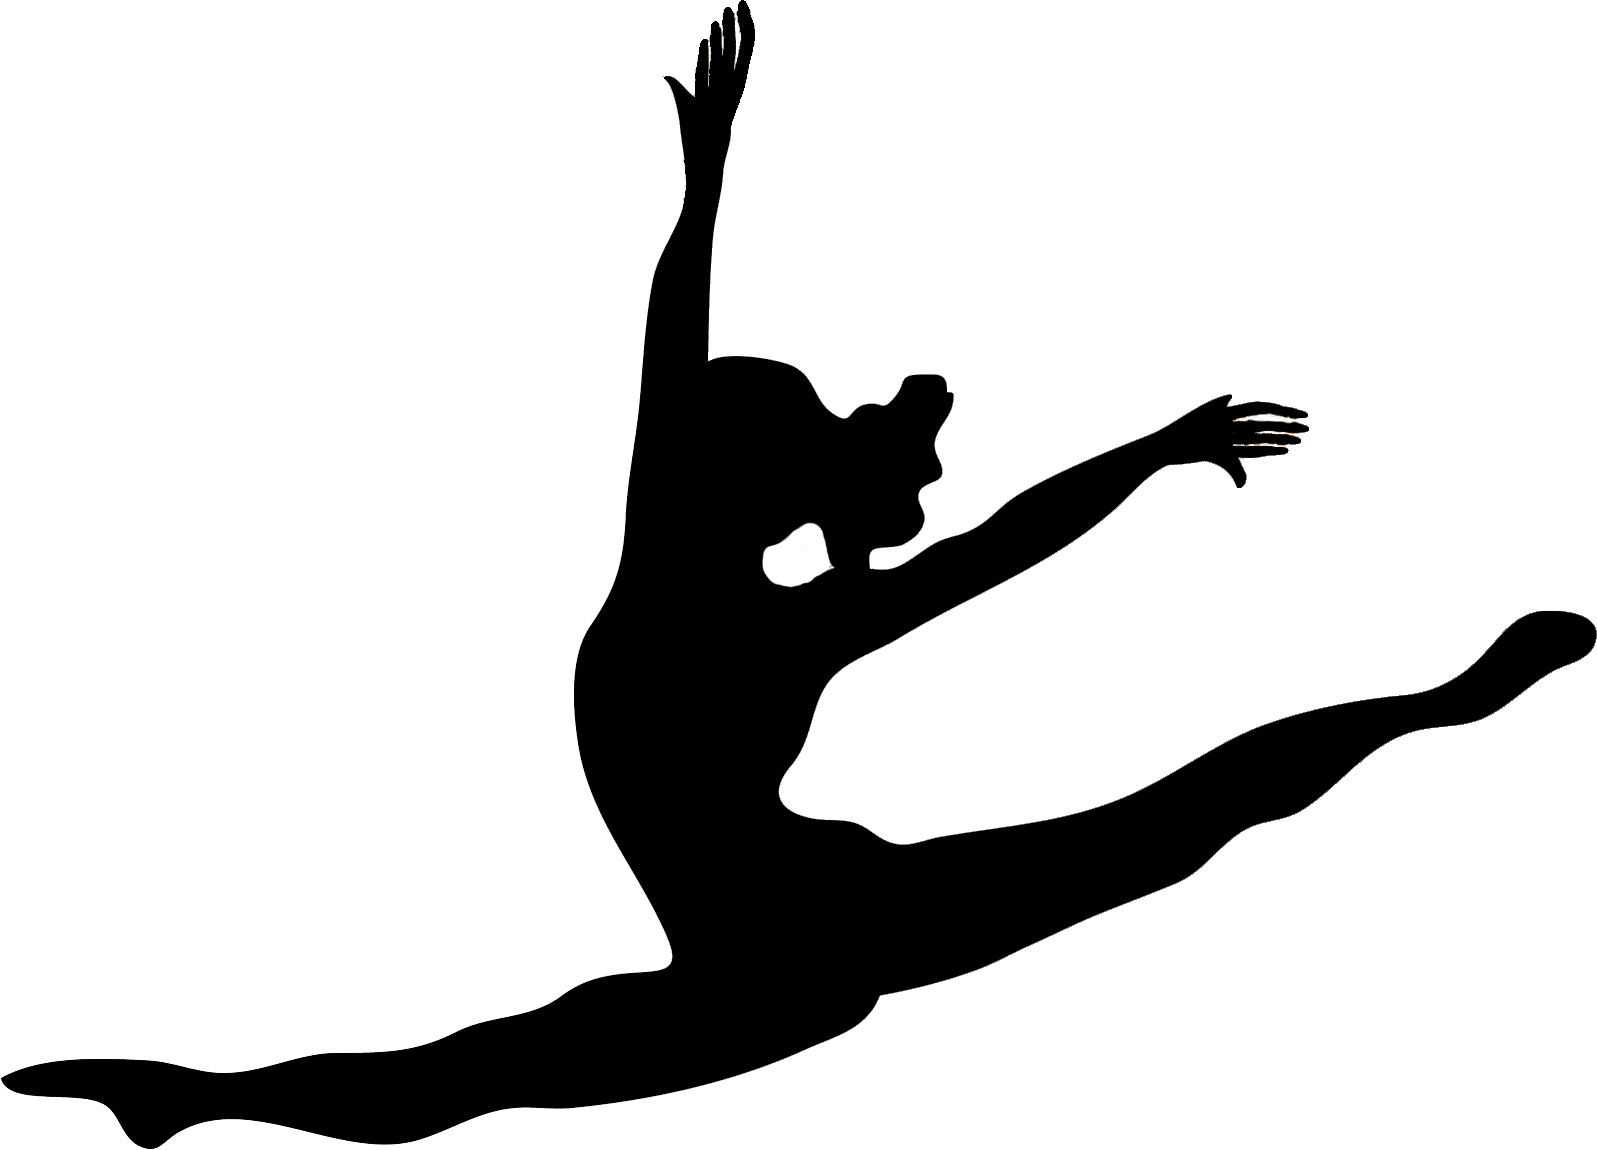 Lyrical Dancer Silhouettes In 2020 Dance Silhouette Dancer Silhouette Silhouette Clip Art